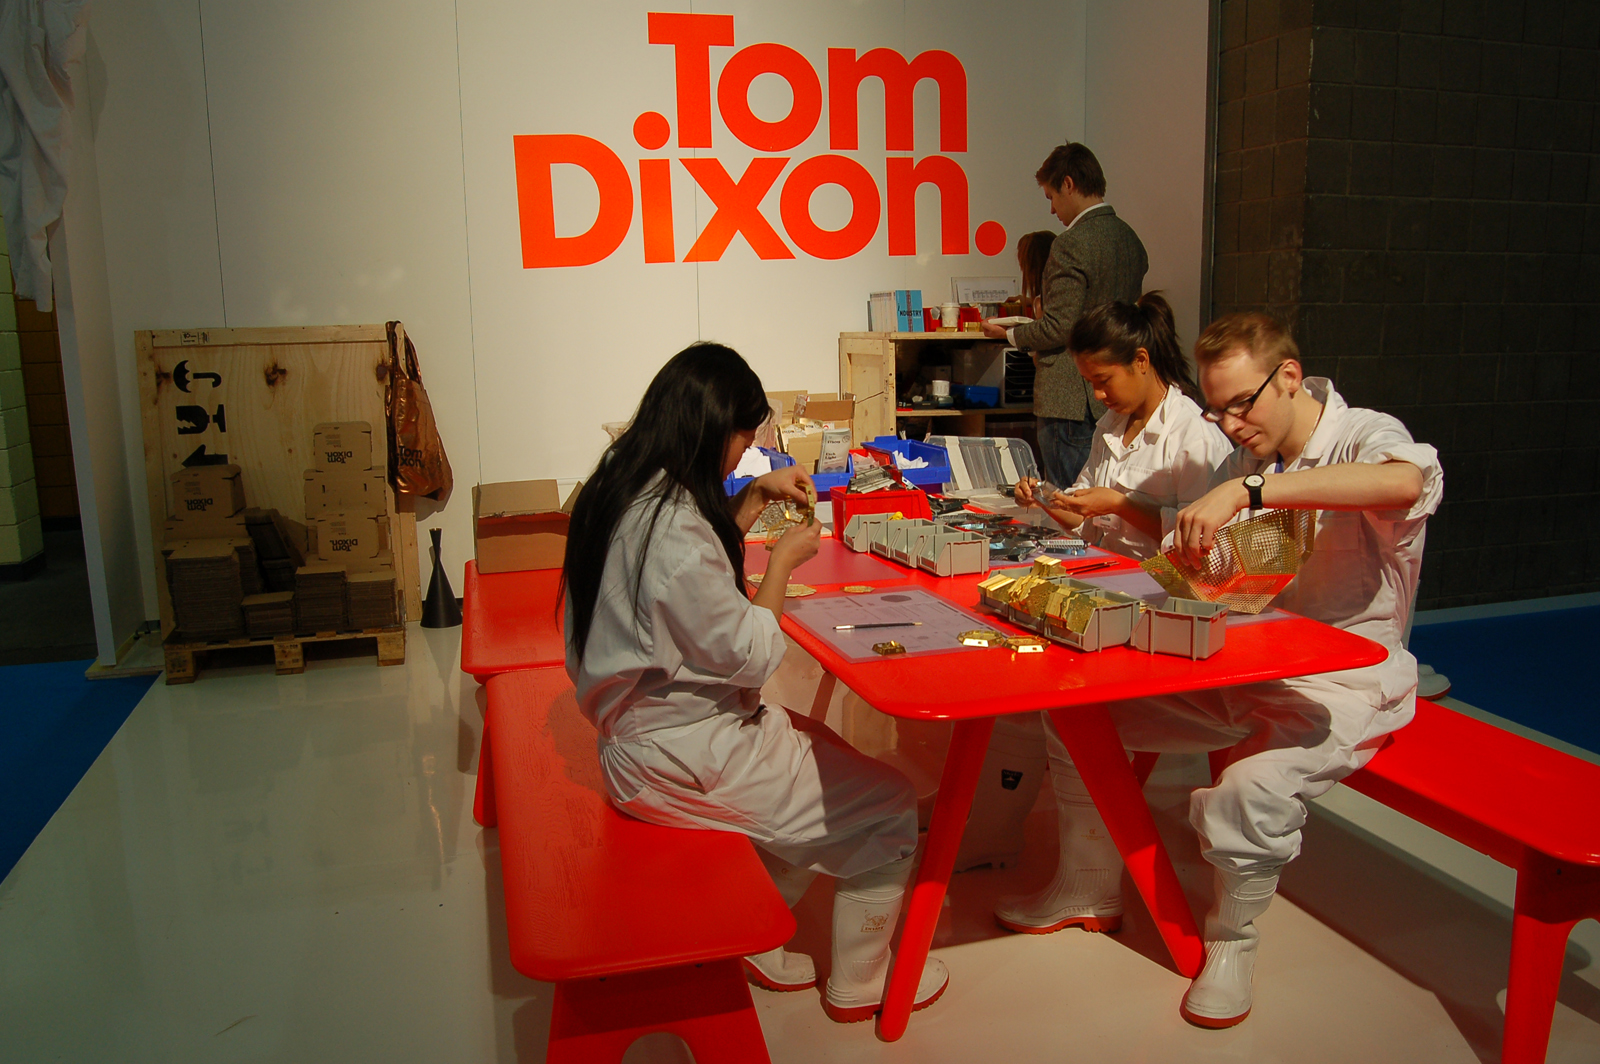 tom dixon flash workers icff